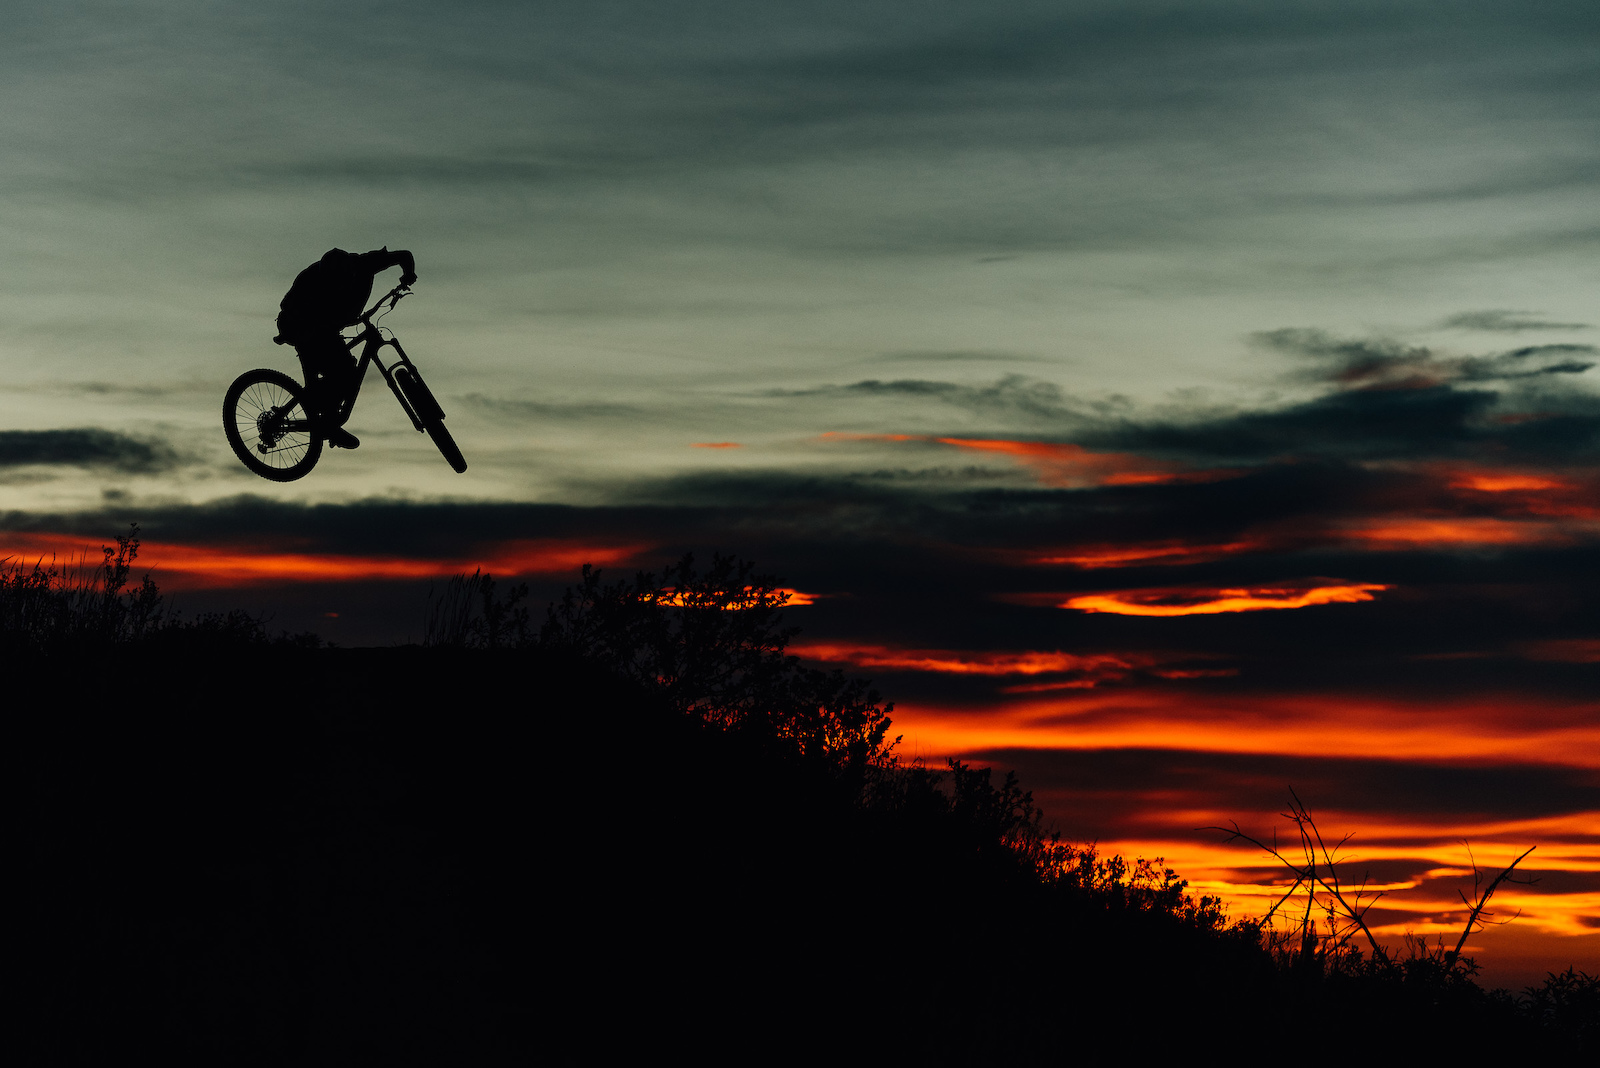 What a way to end a huge day of riding.